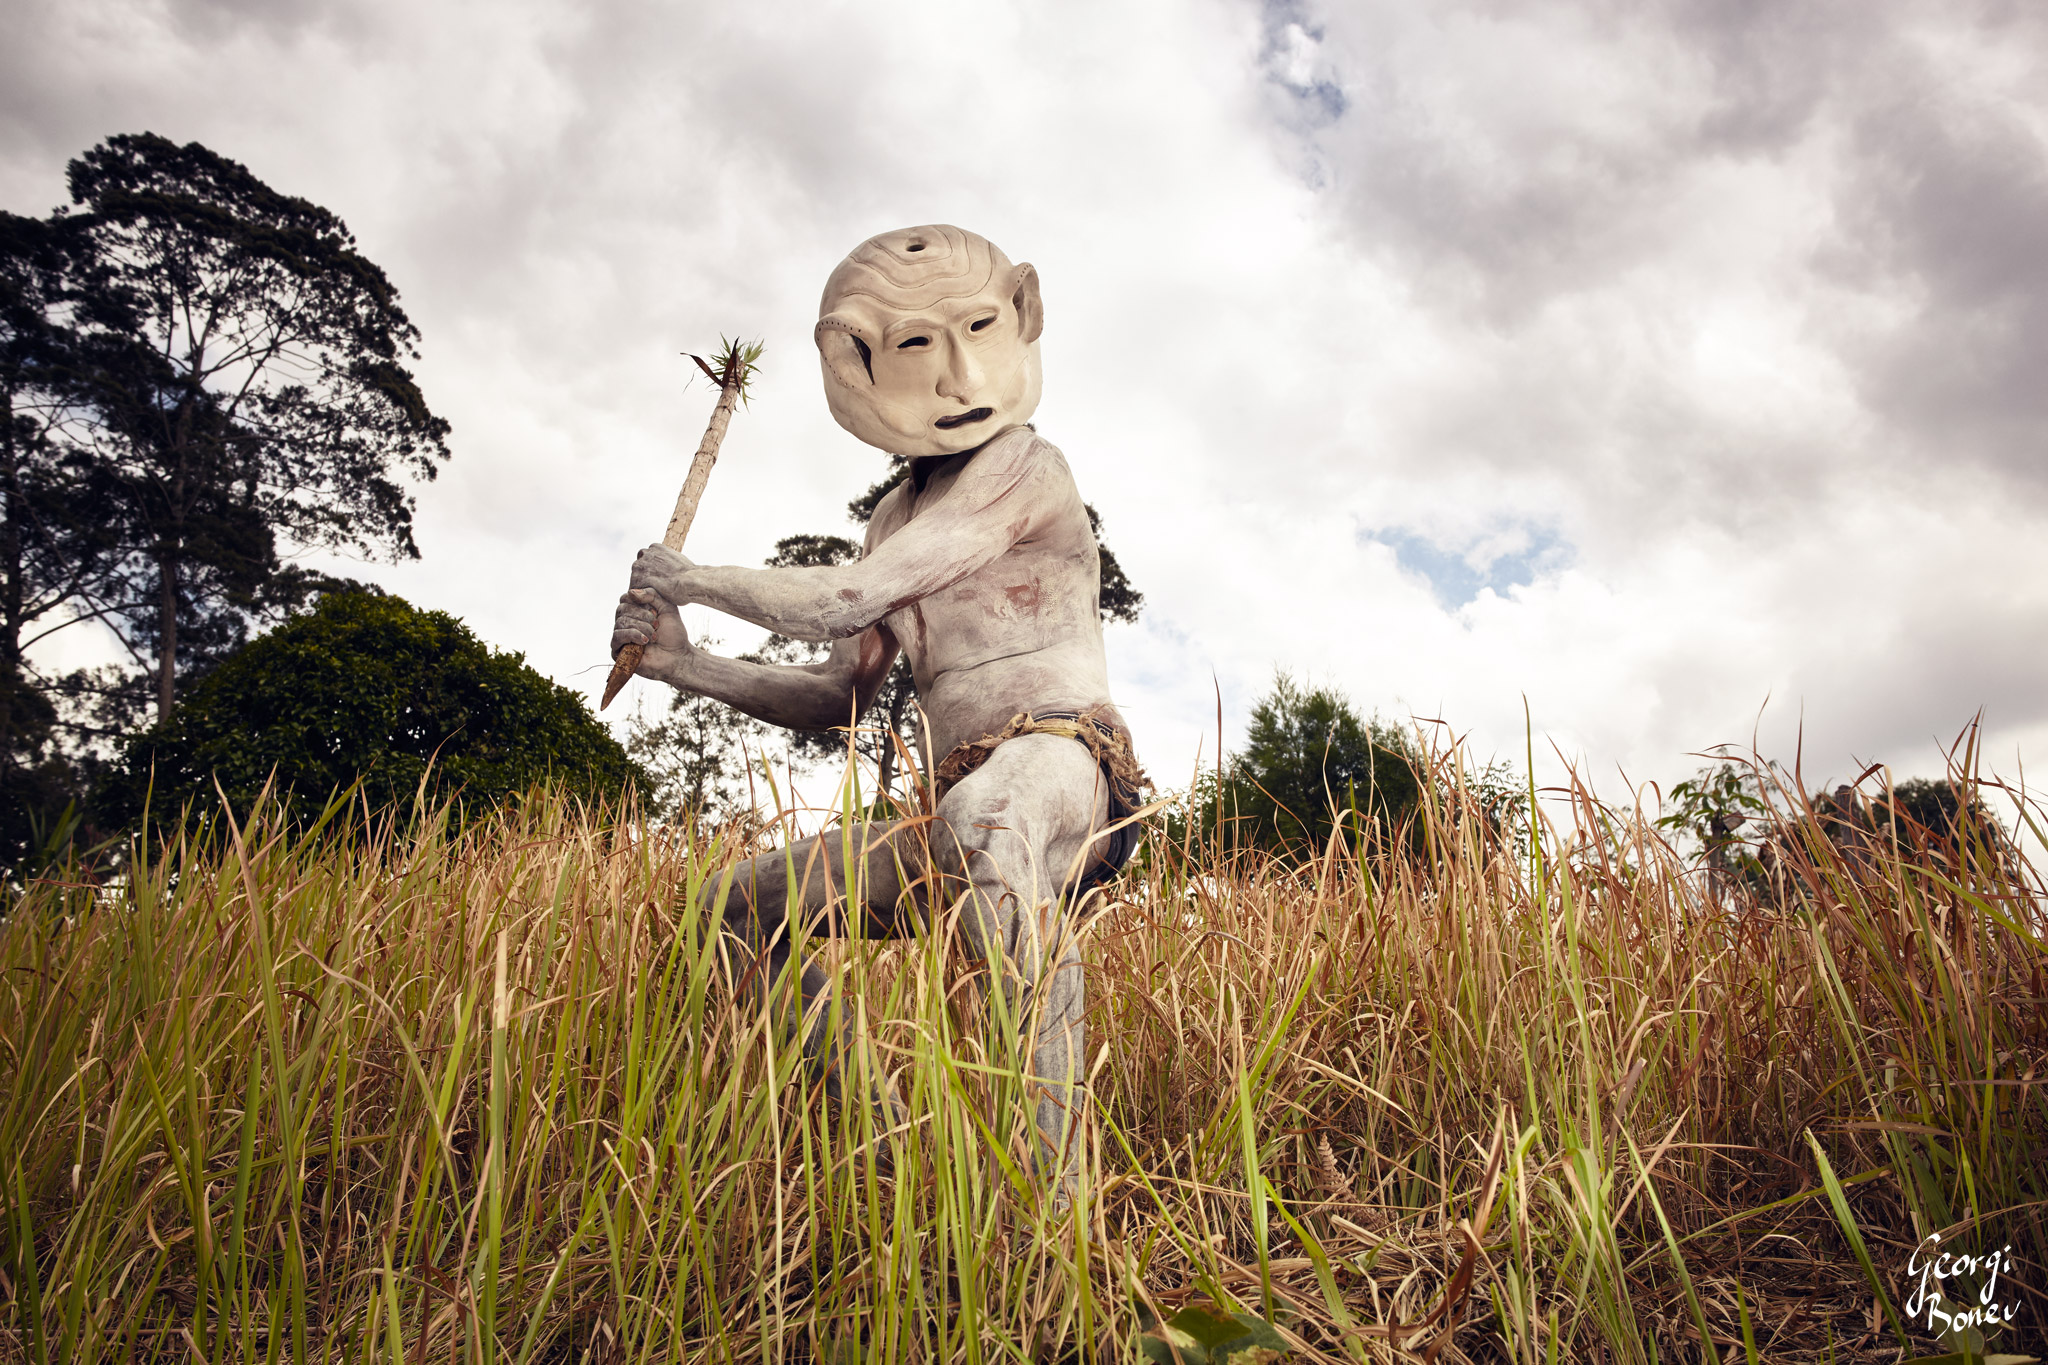 ASARO MUDMEN IN PAPUA NEW GUINEA LOOKING SCARRY